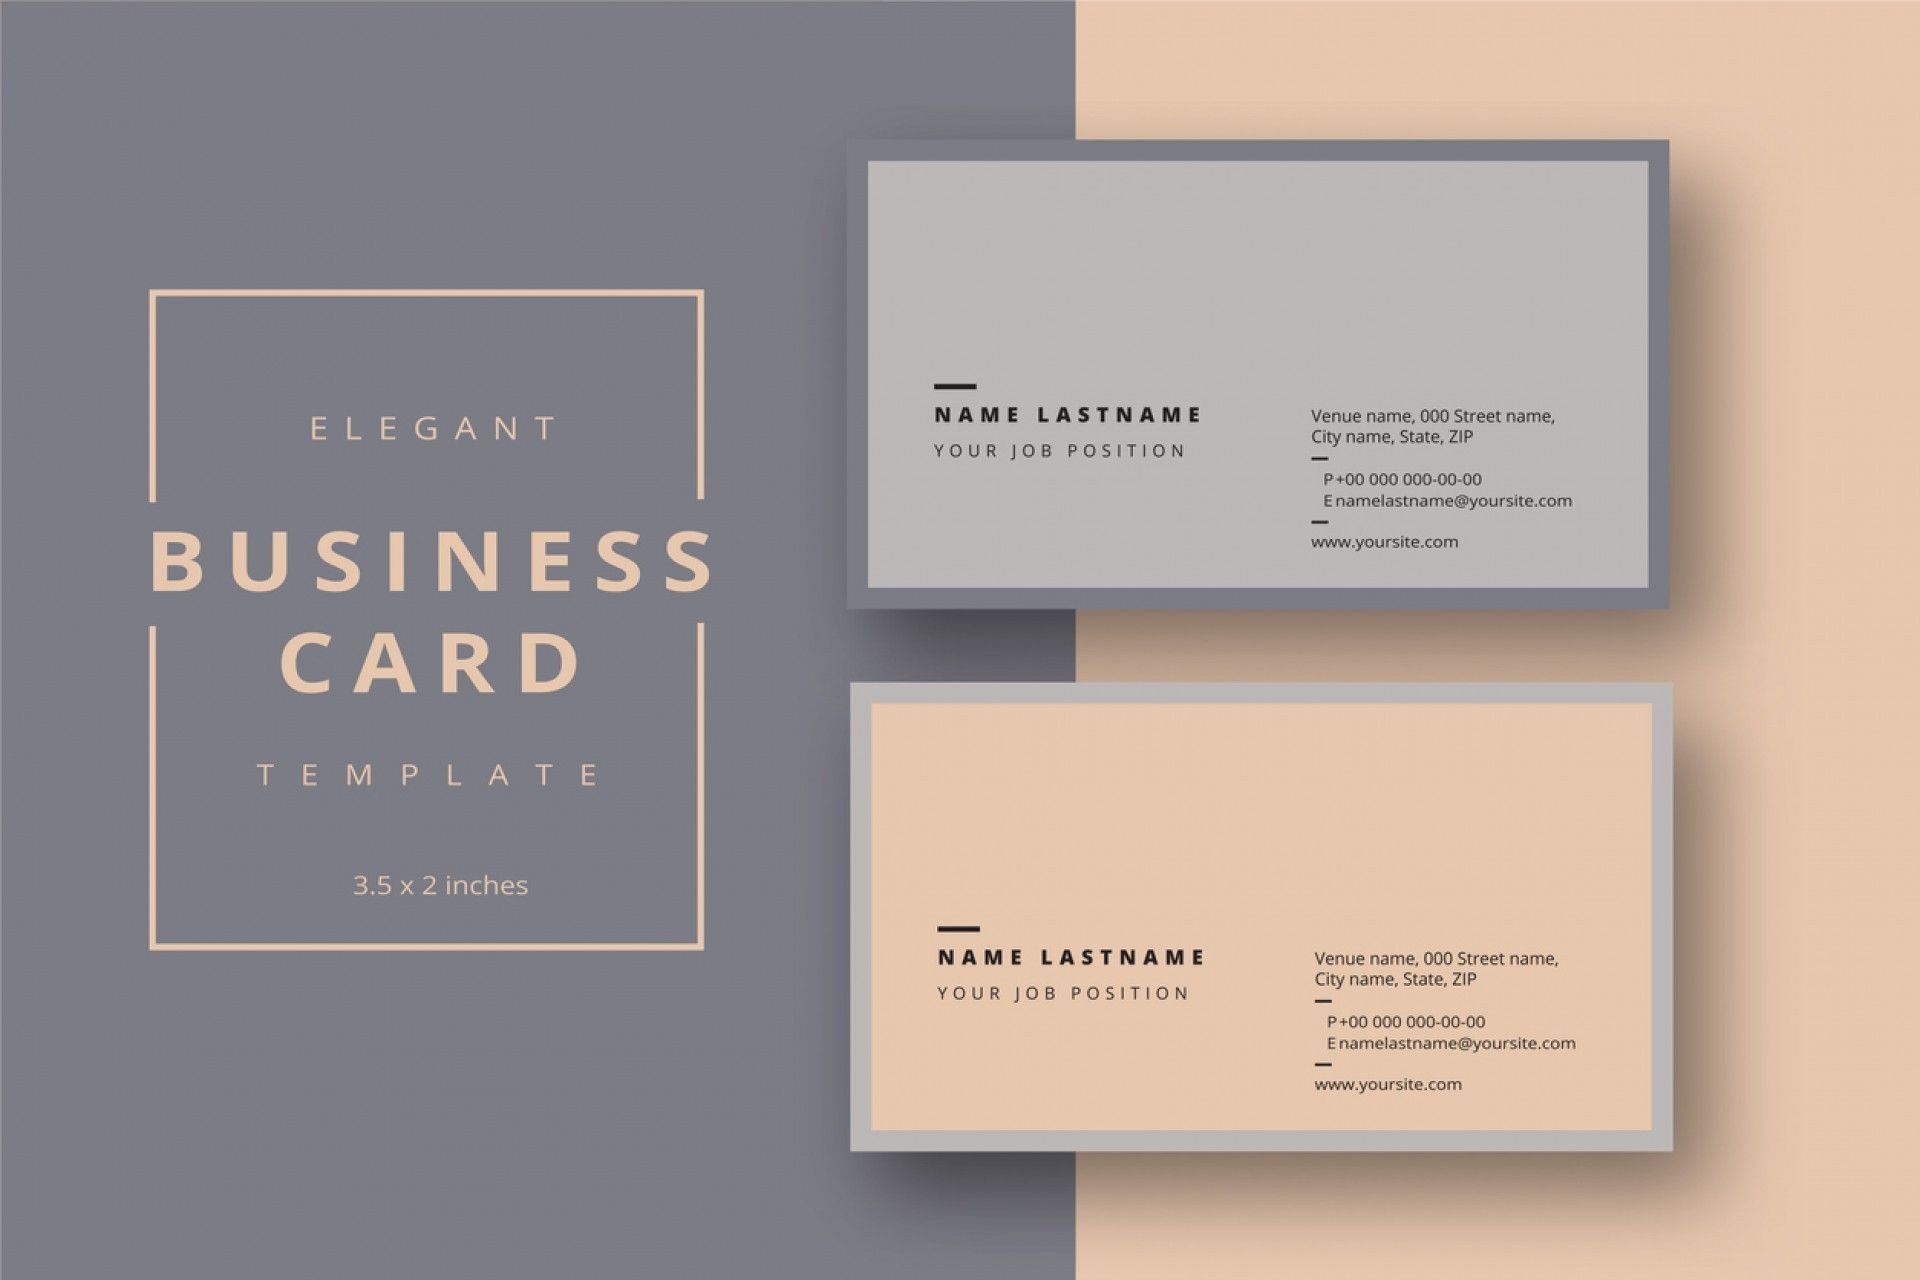 002 Awful M Office Busines Card Template High Definition  Templates Microsoft 2010 20071920